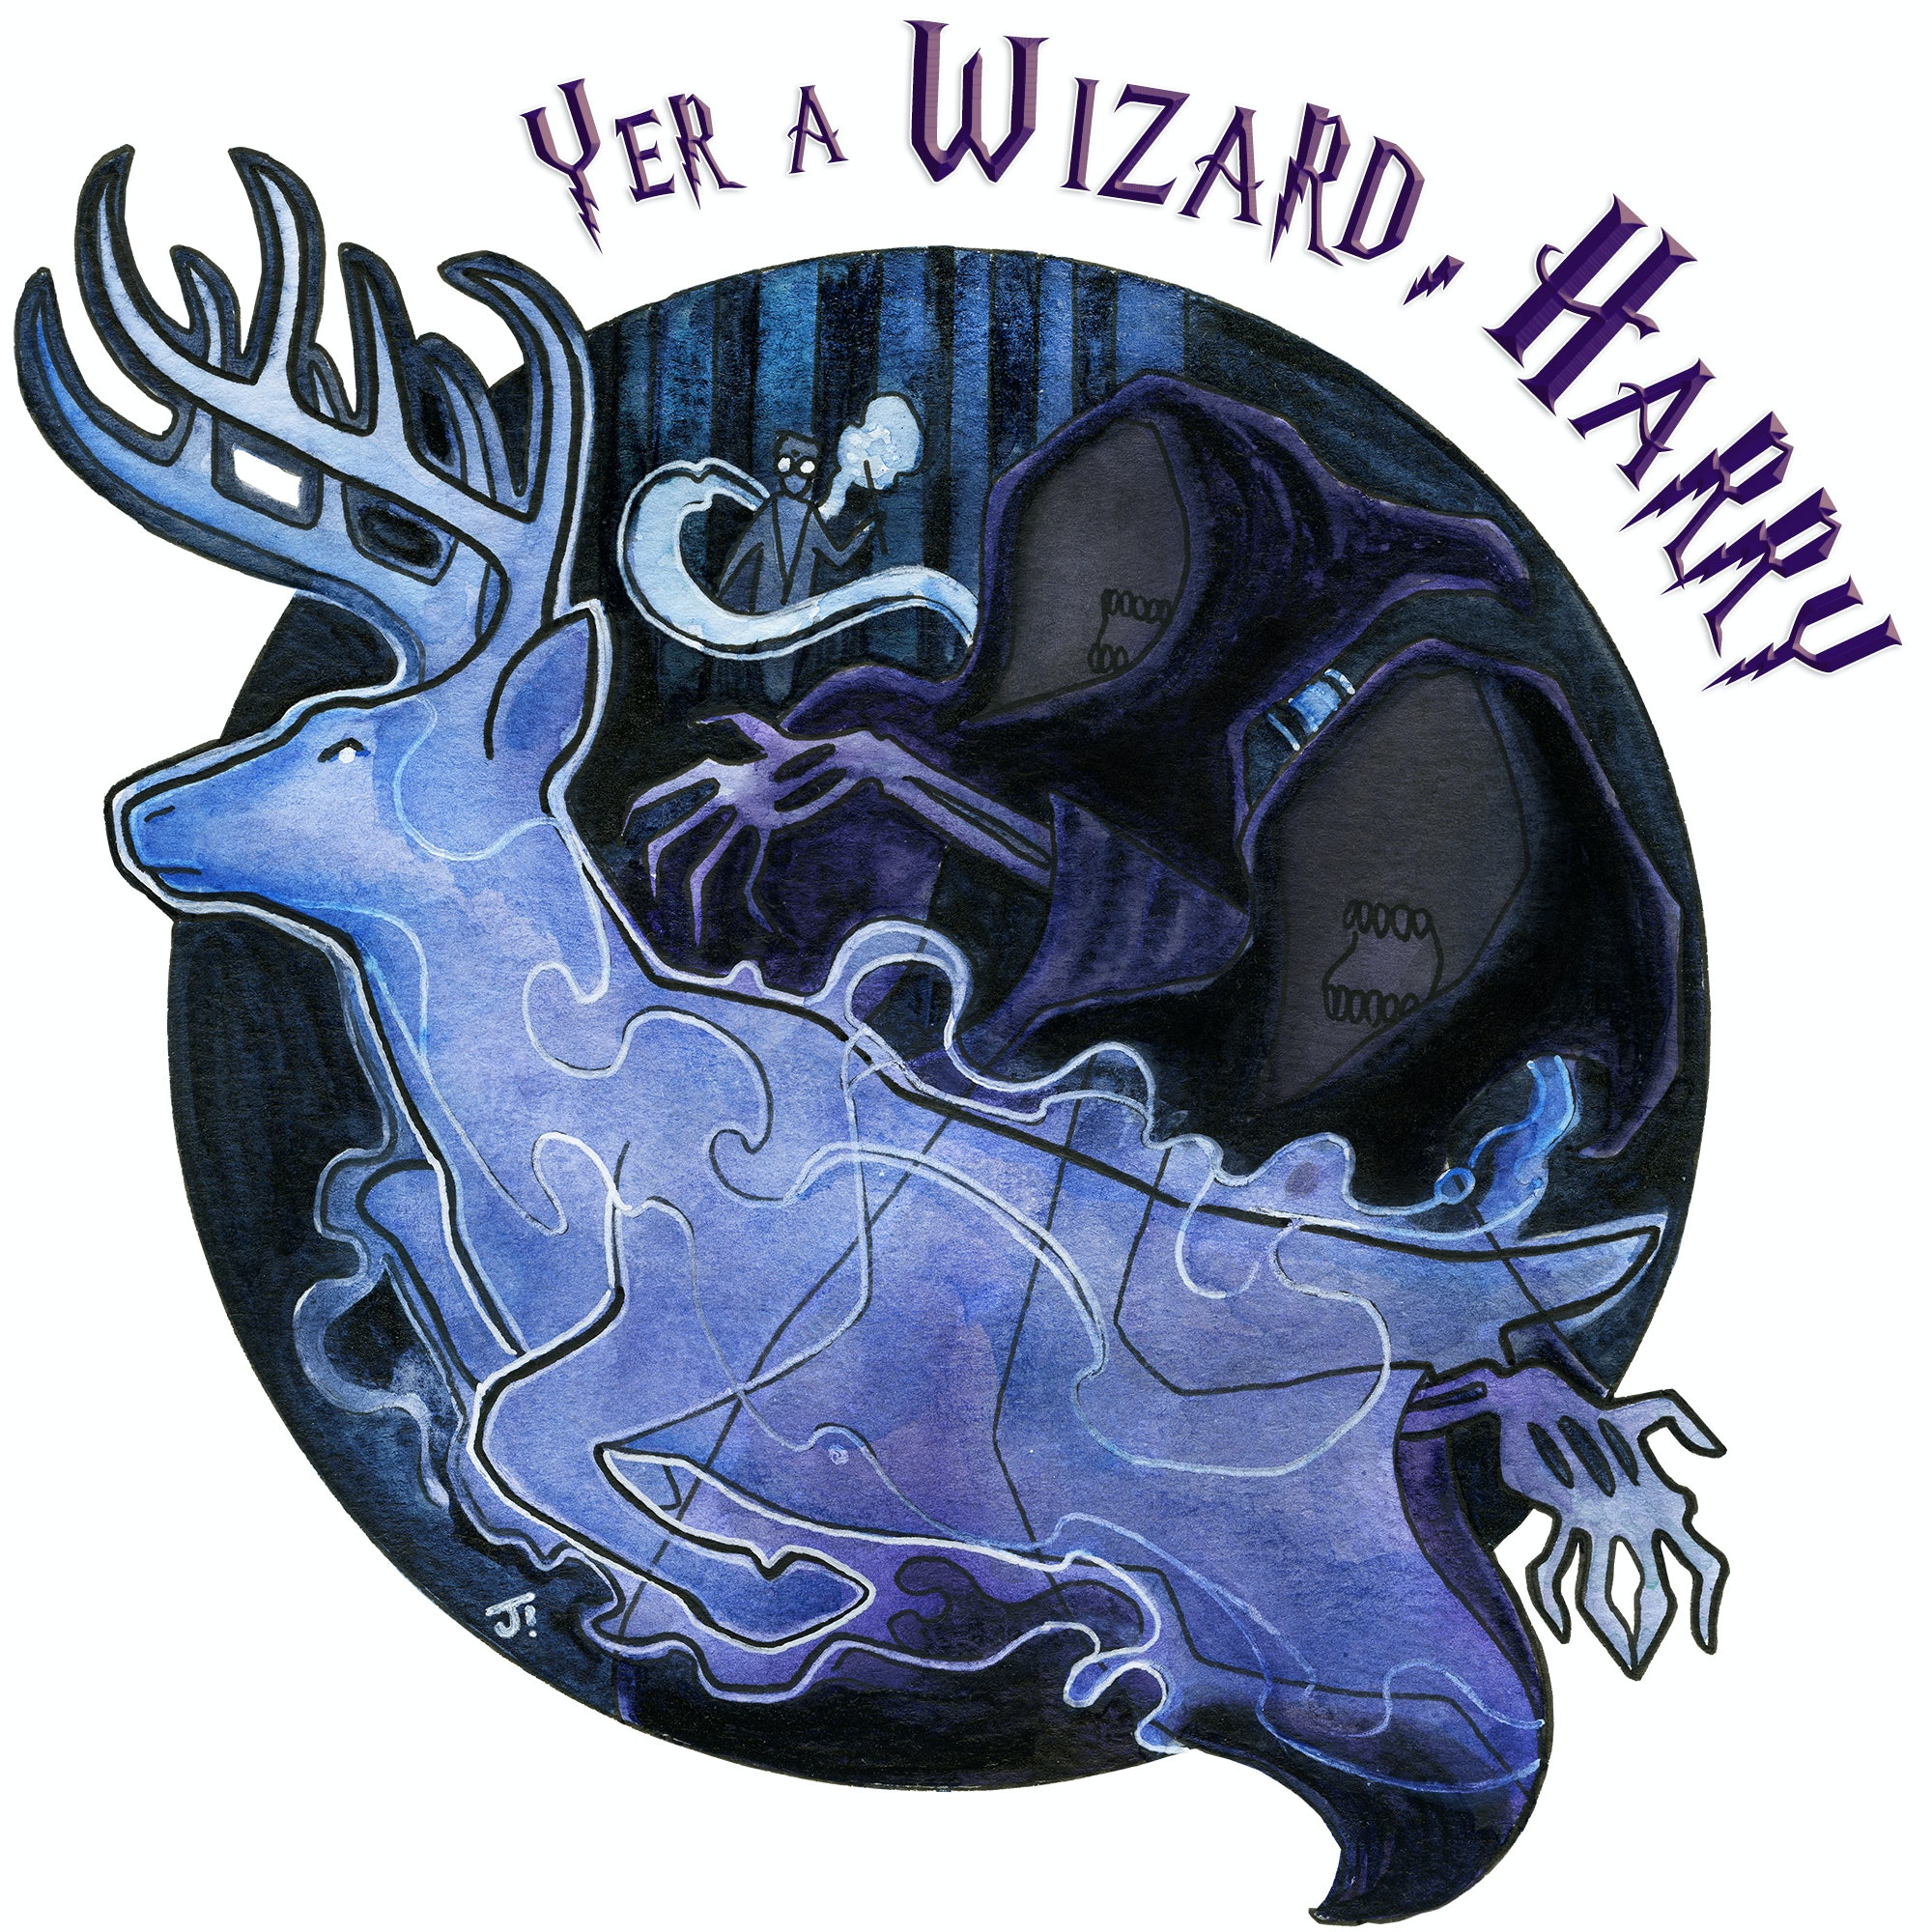 11 harry potter podcasts every potterhead needs in their life